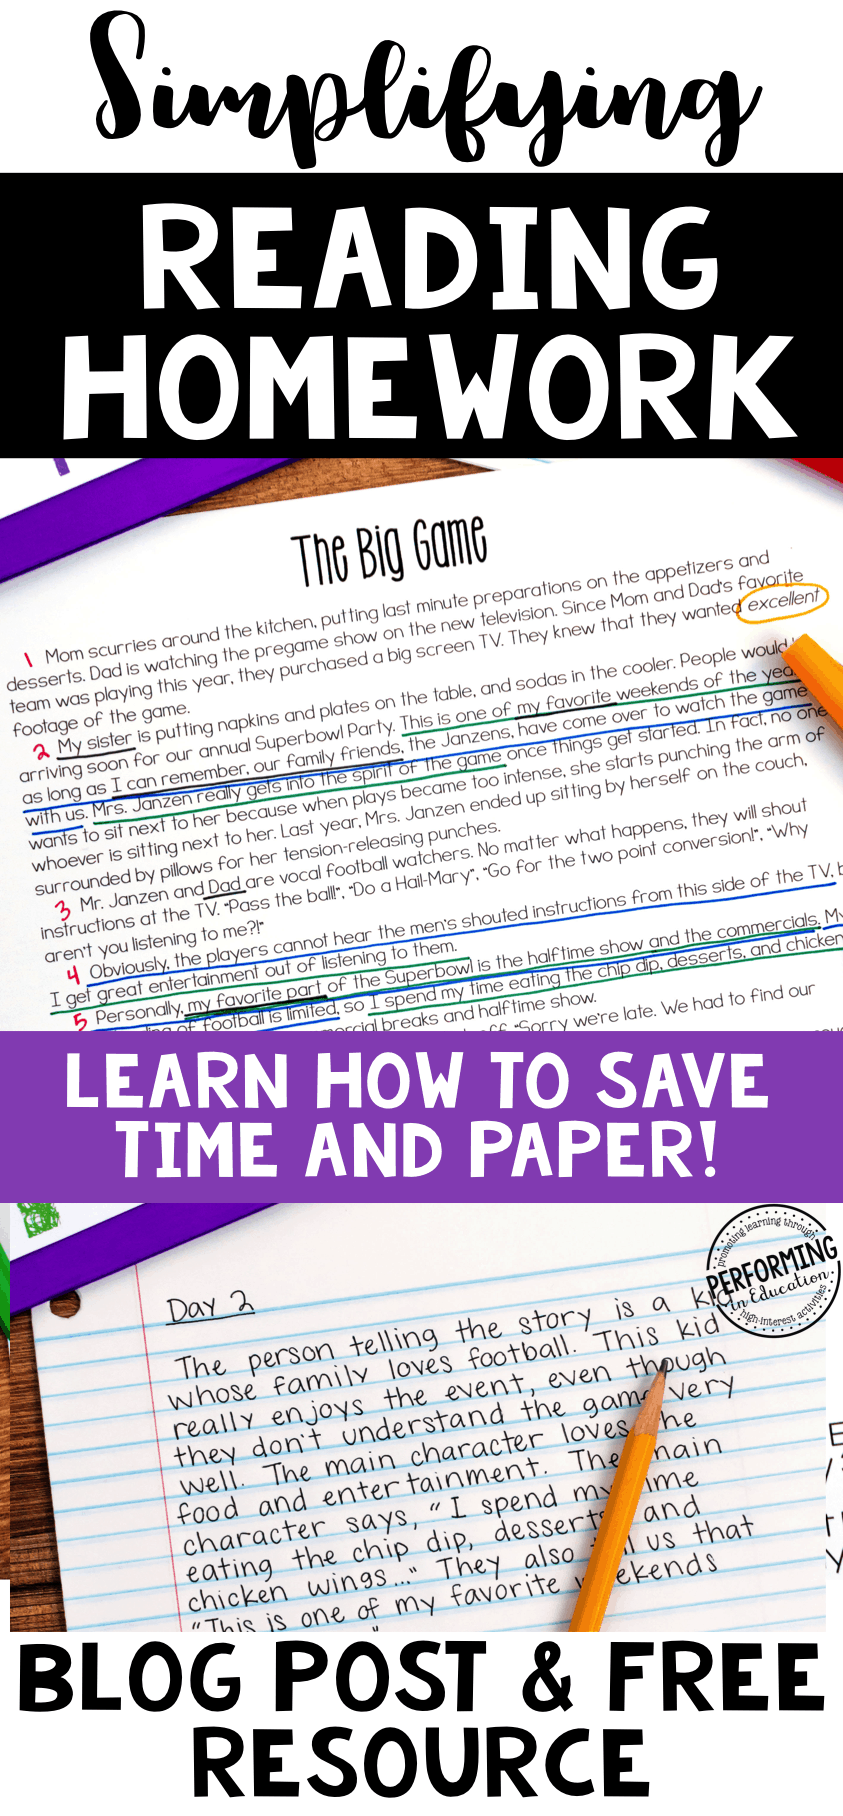 Save paper with this awesome spiral reading homework for grades 4 and 5!